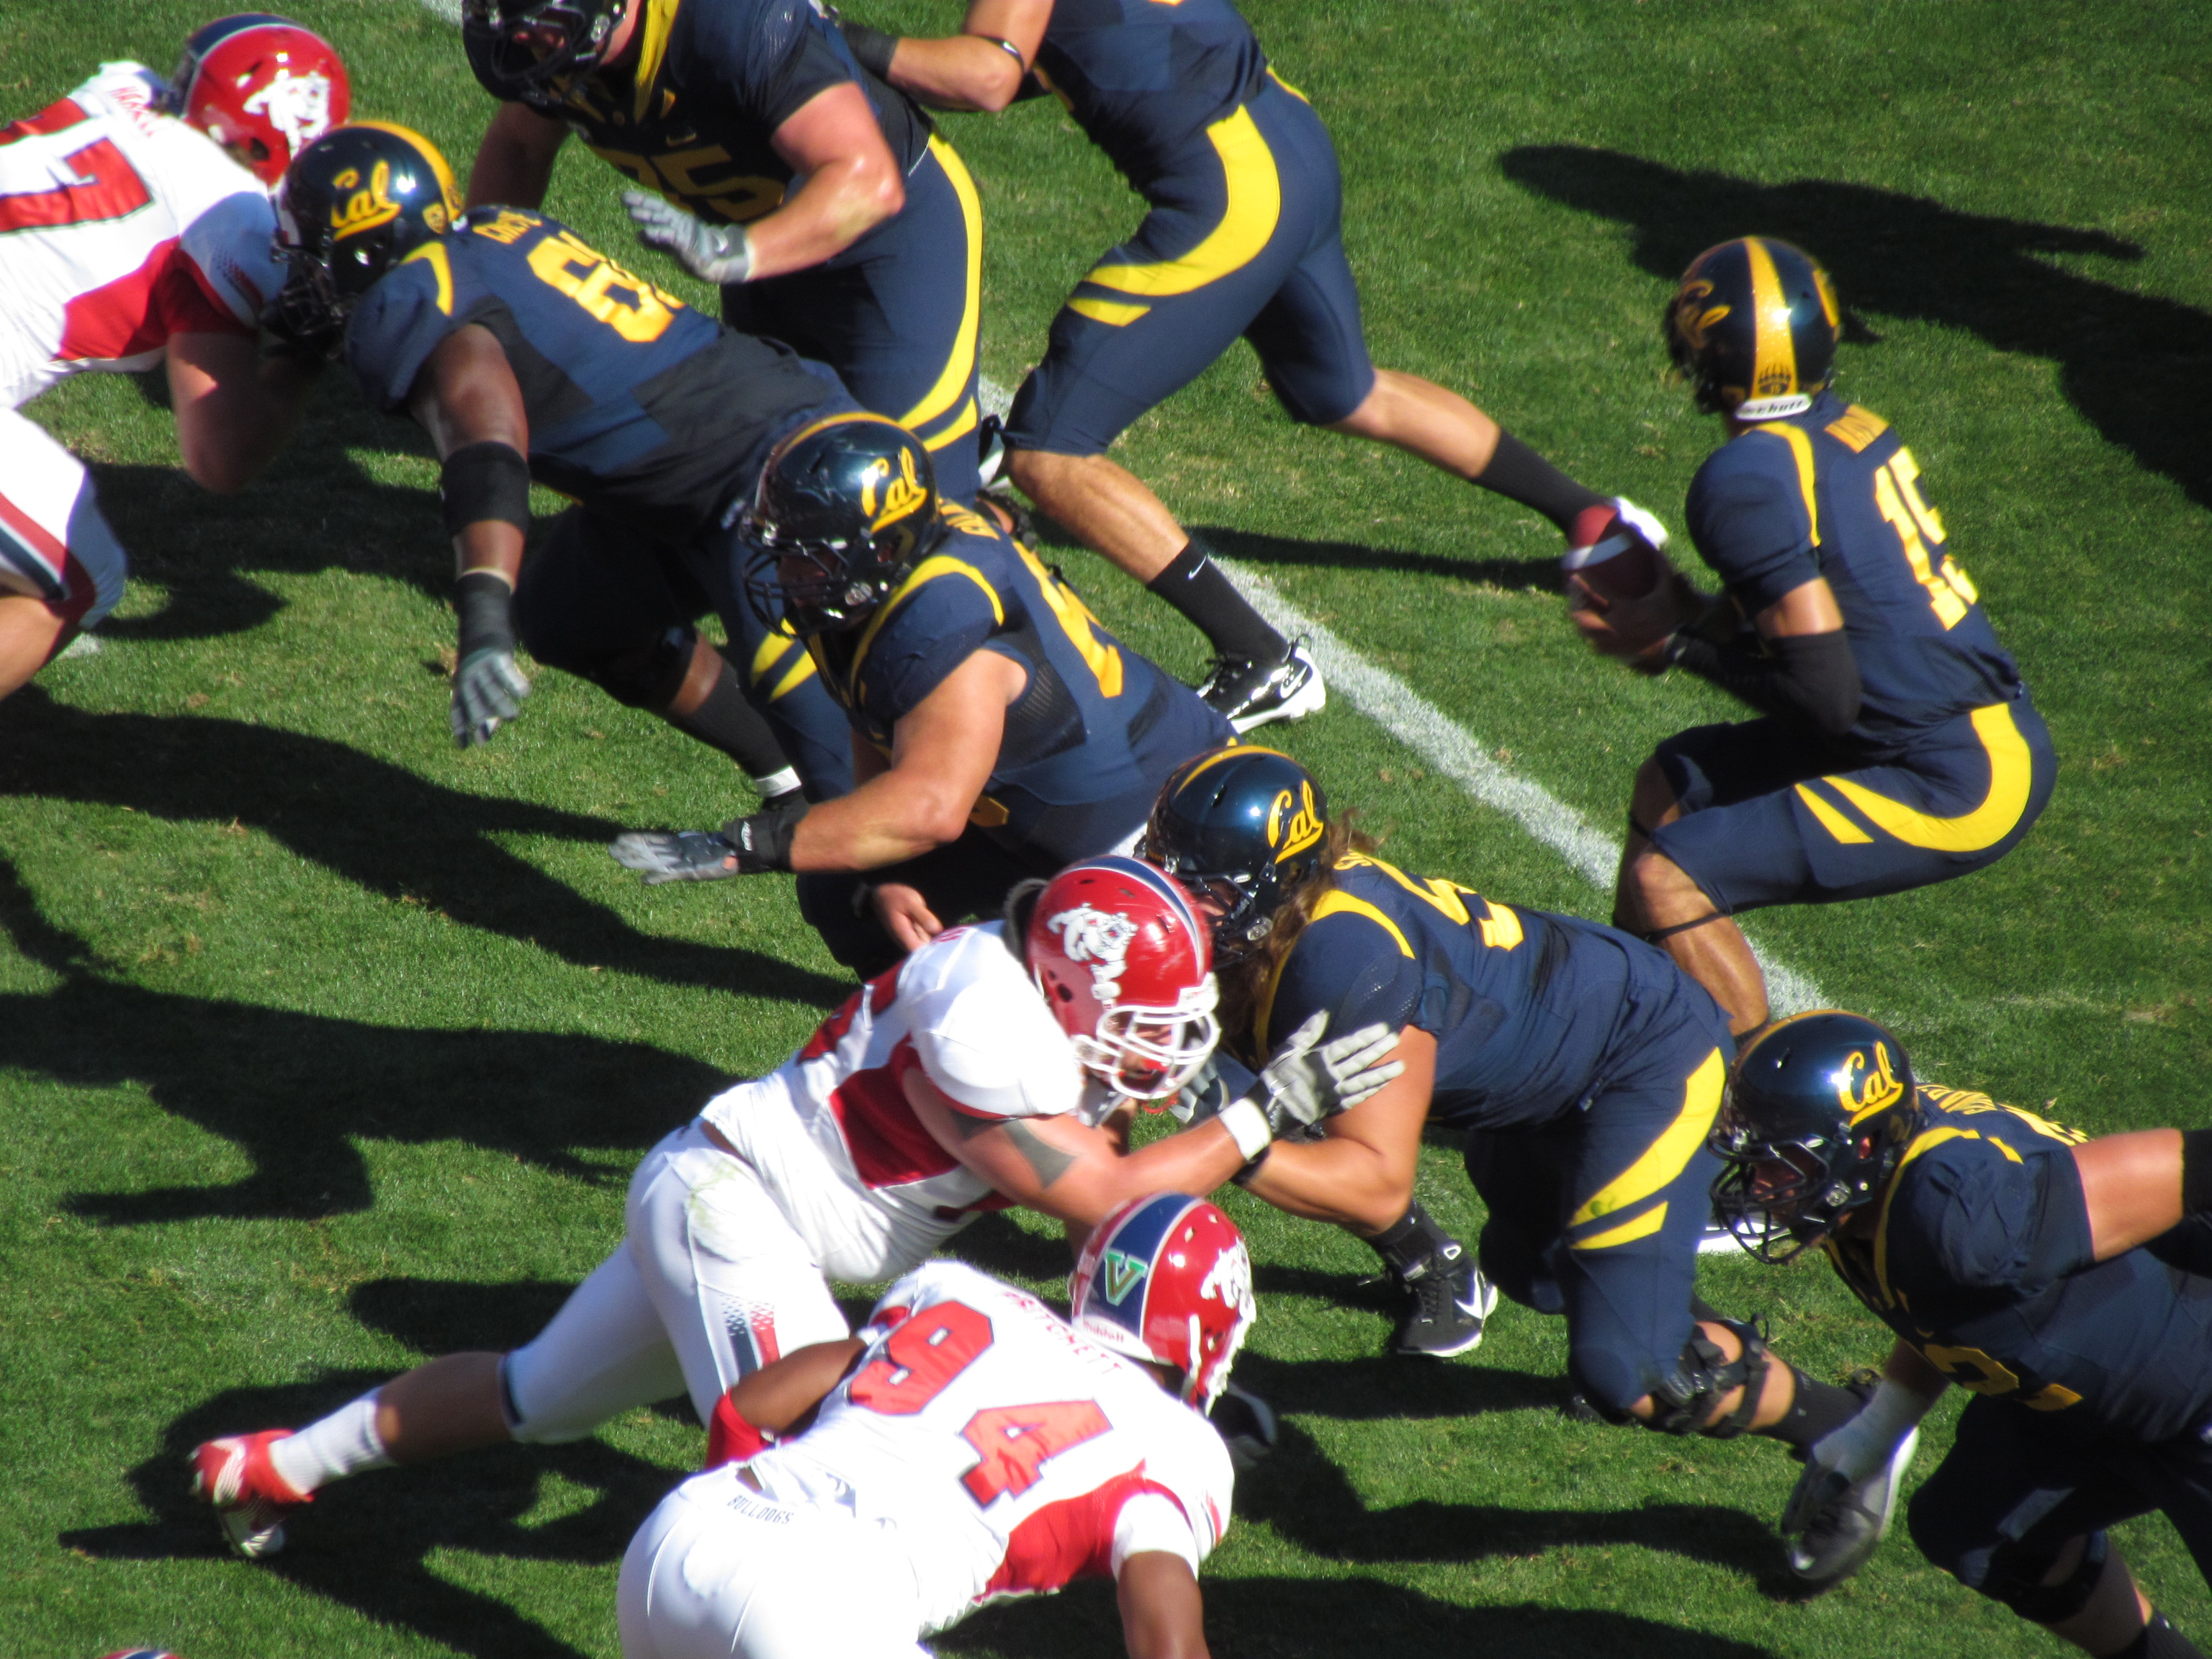 California Golden Bears vs Fresno State Bulldogs at Candlestick Park, San Francisco.